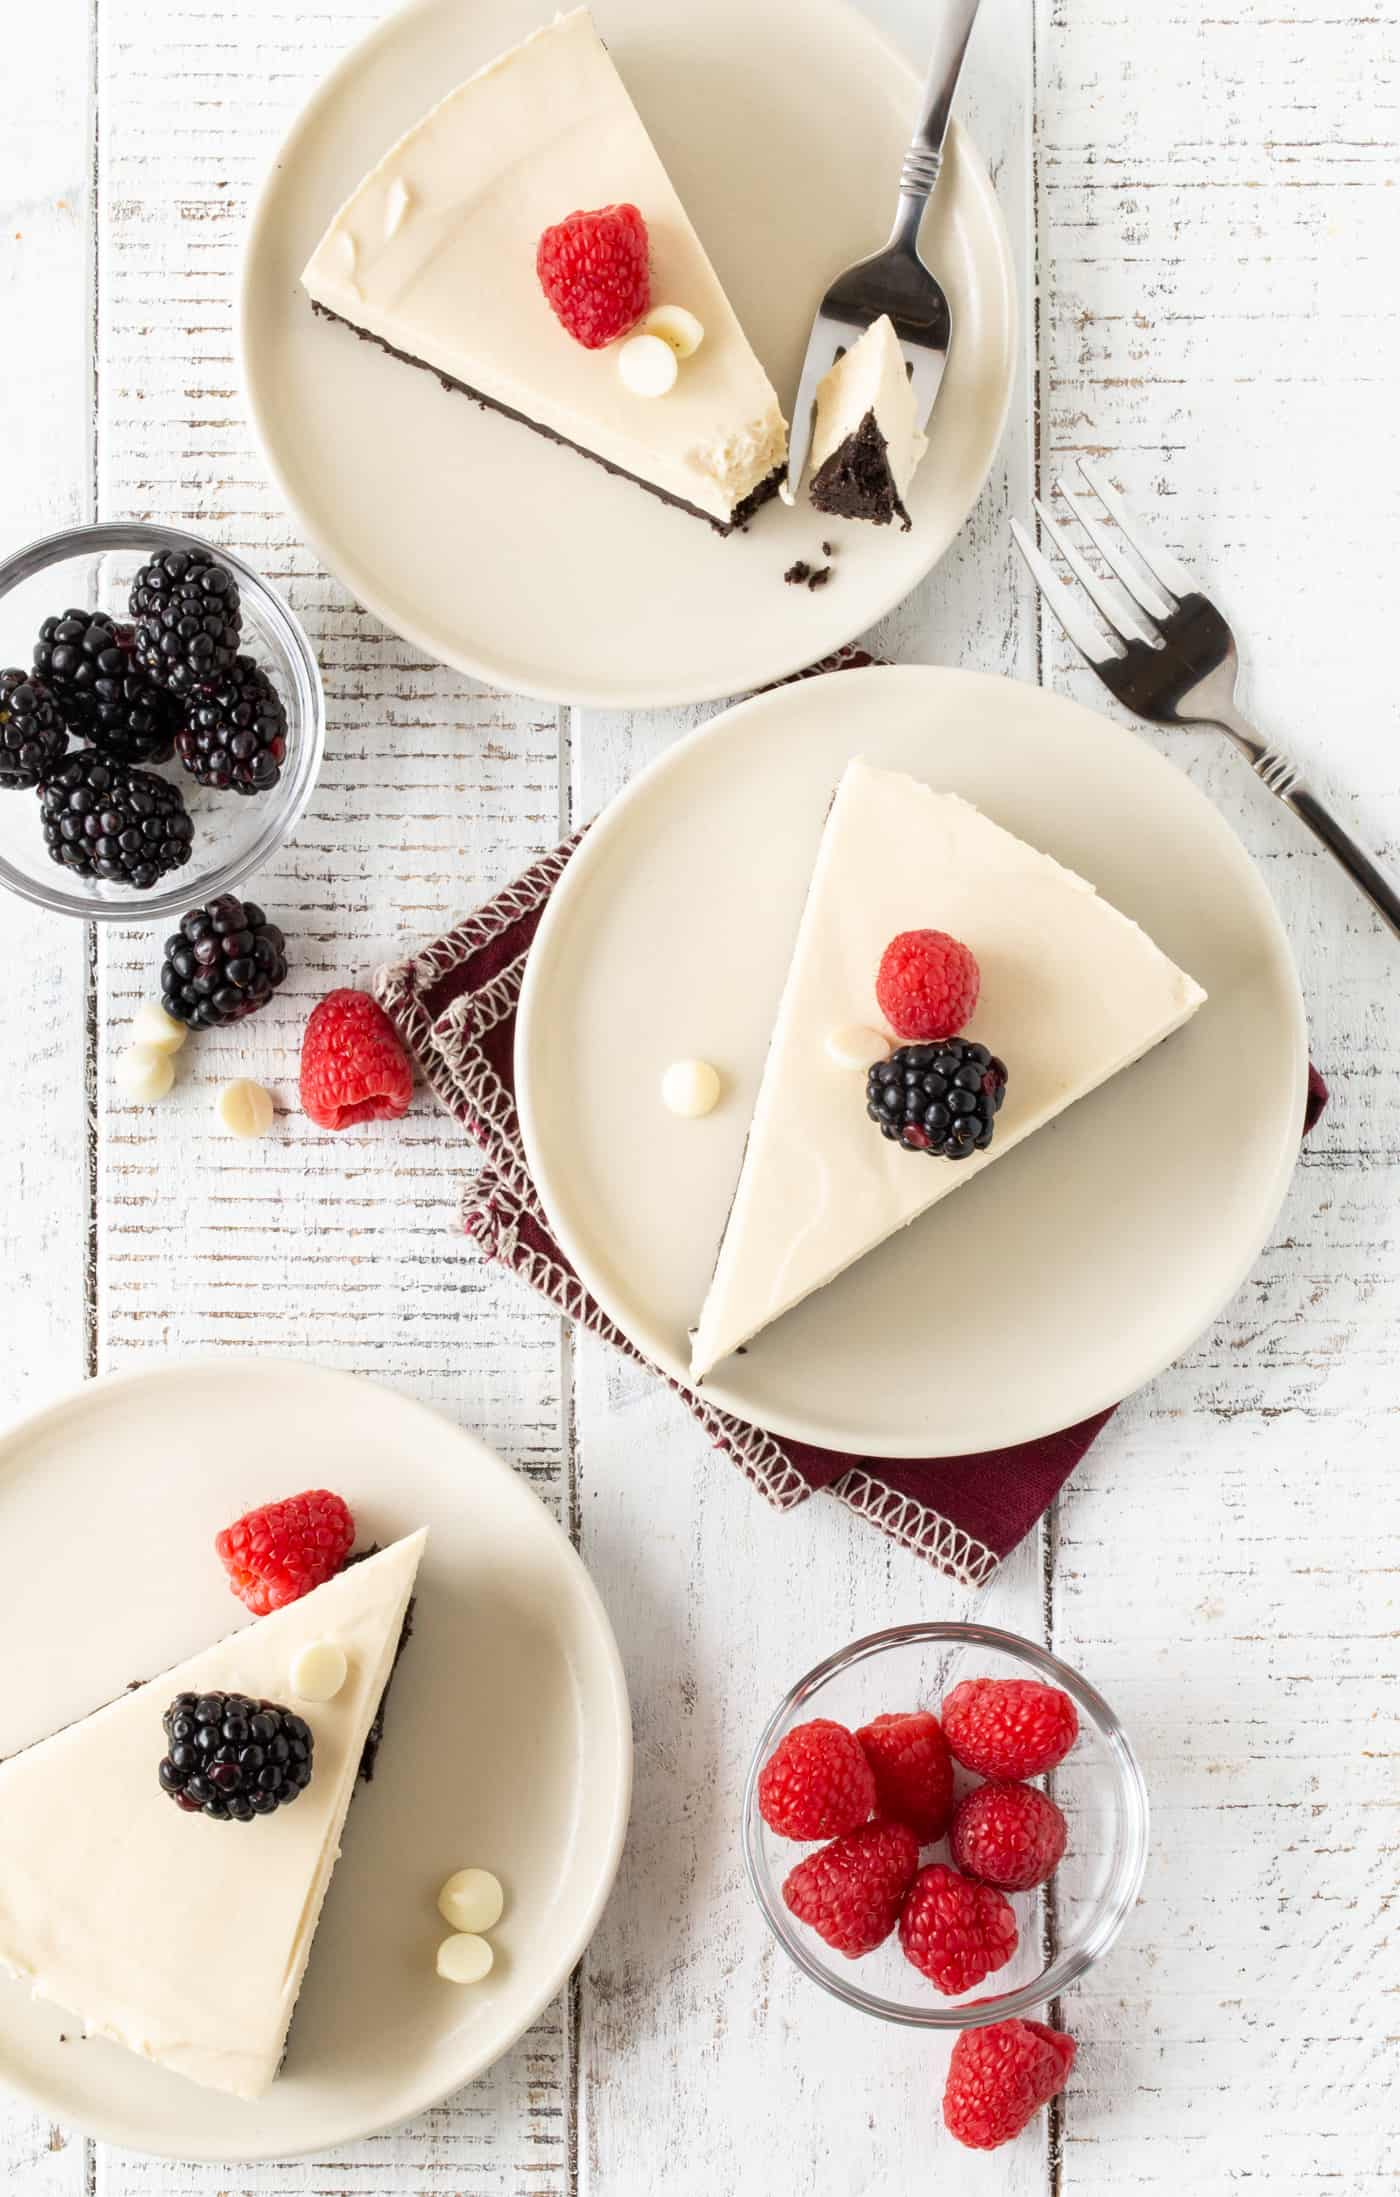 Top down image of 3 slices of Easy White Chocolate Tart recipe on white plates with fresh berries for garnish.